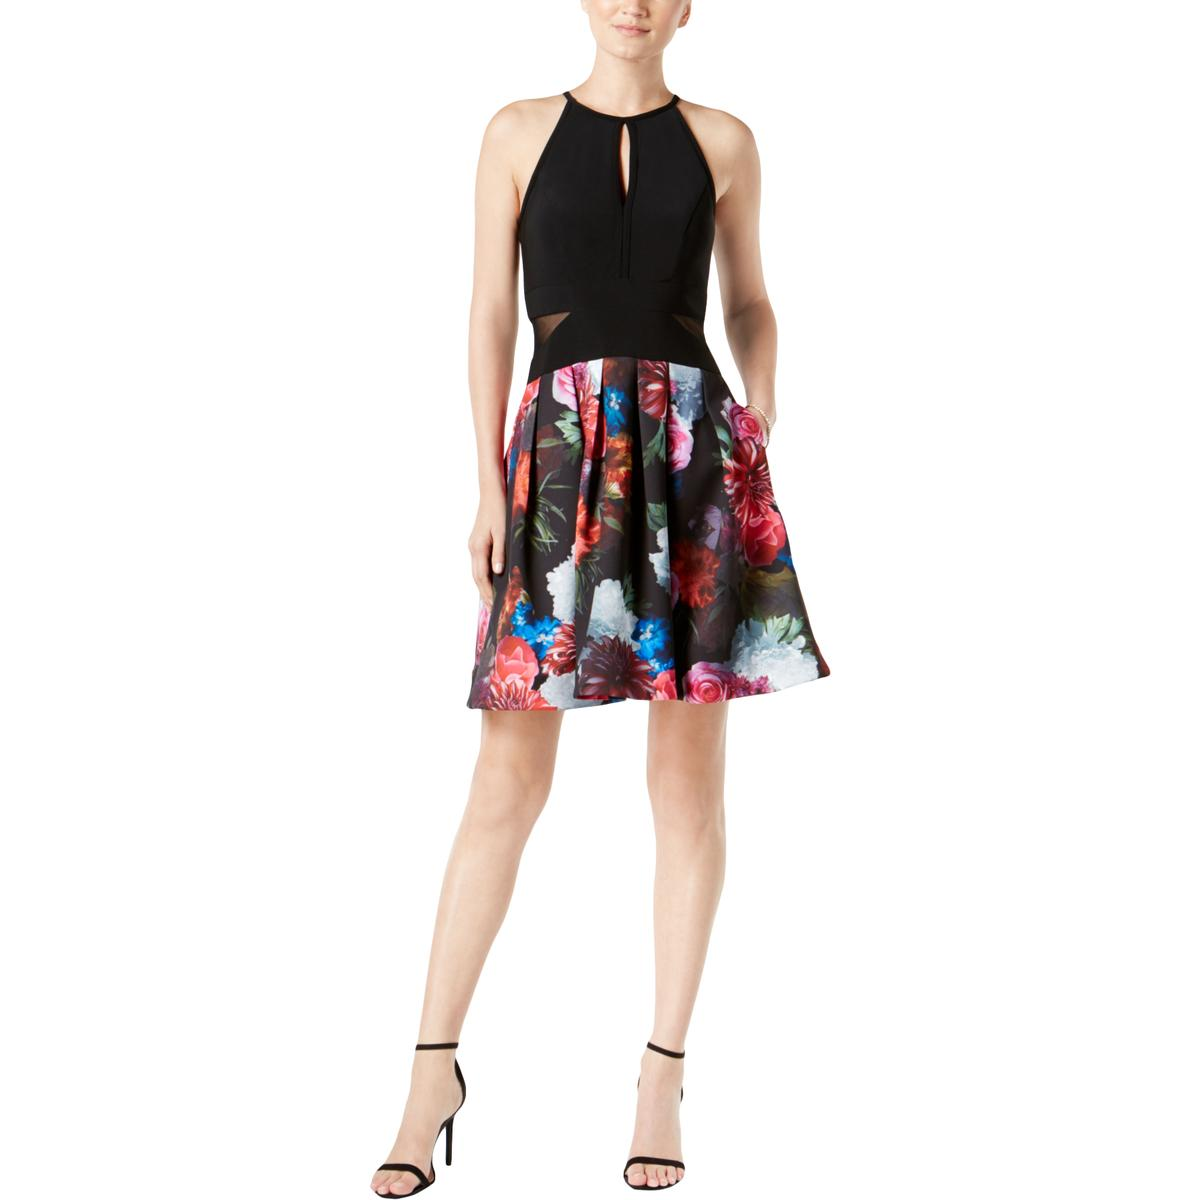 5fbf1da2 Details about Xscape Womens Black Floral Illusion Fit & Flare Party Dress  10 BHFO 3421